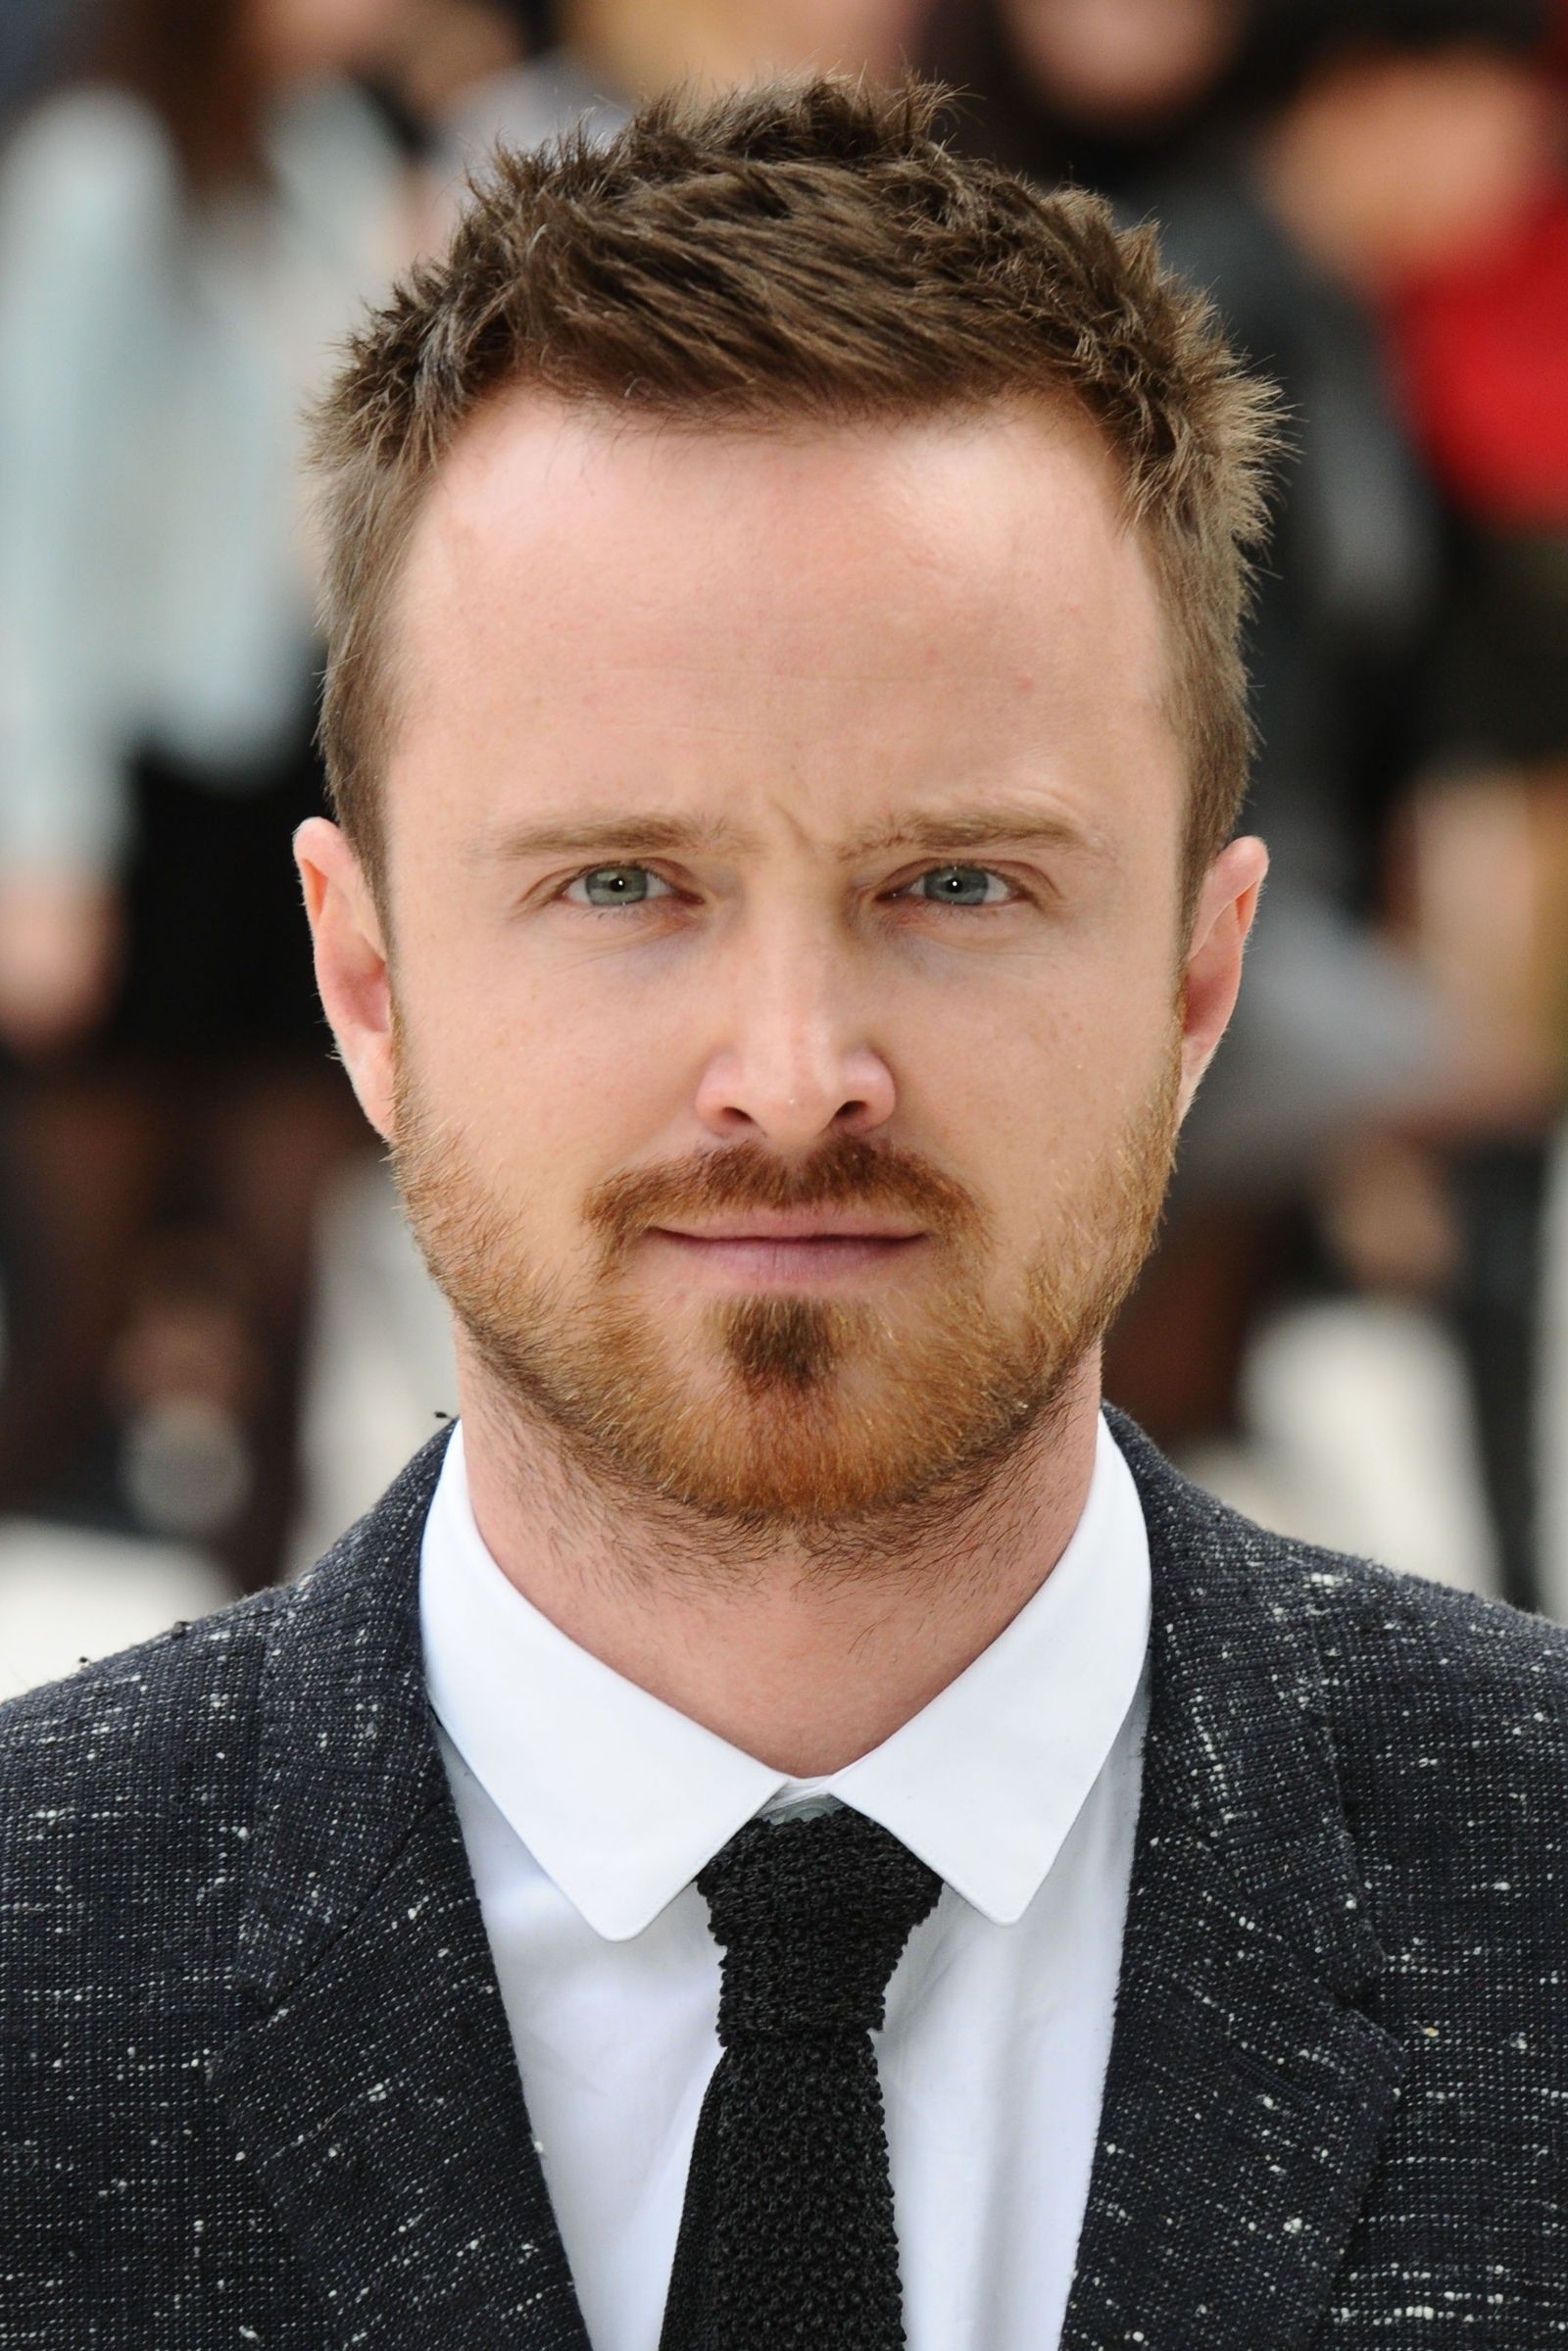 Hairstyle For Big Forehead Men Big Forehead Hairstyles Men Big